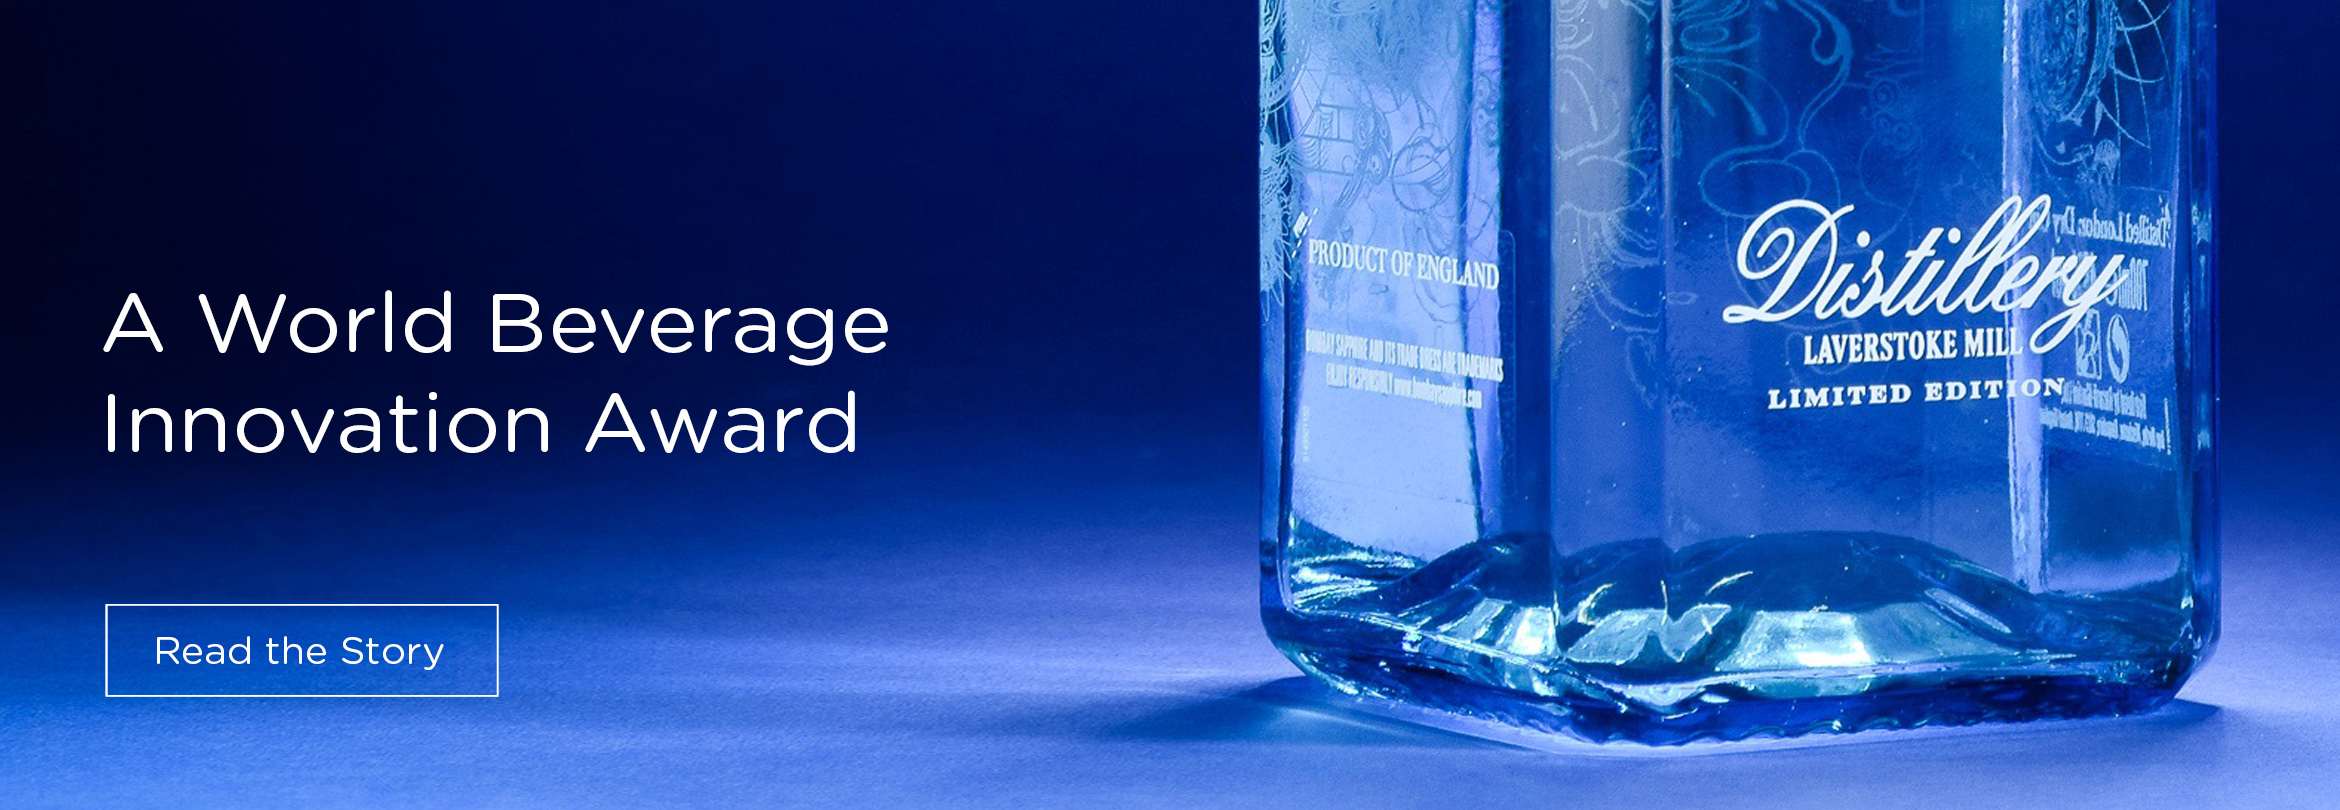 A world beverage innovation award